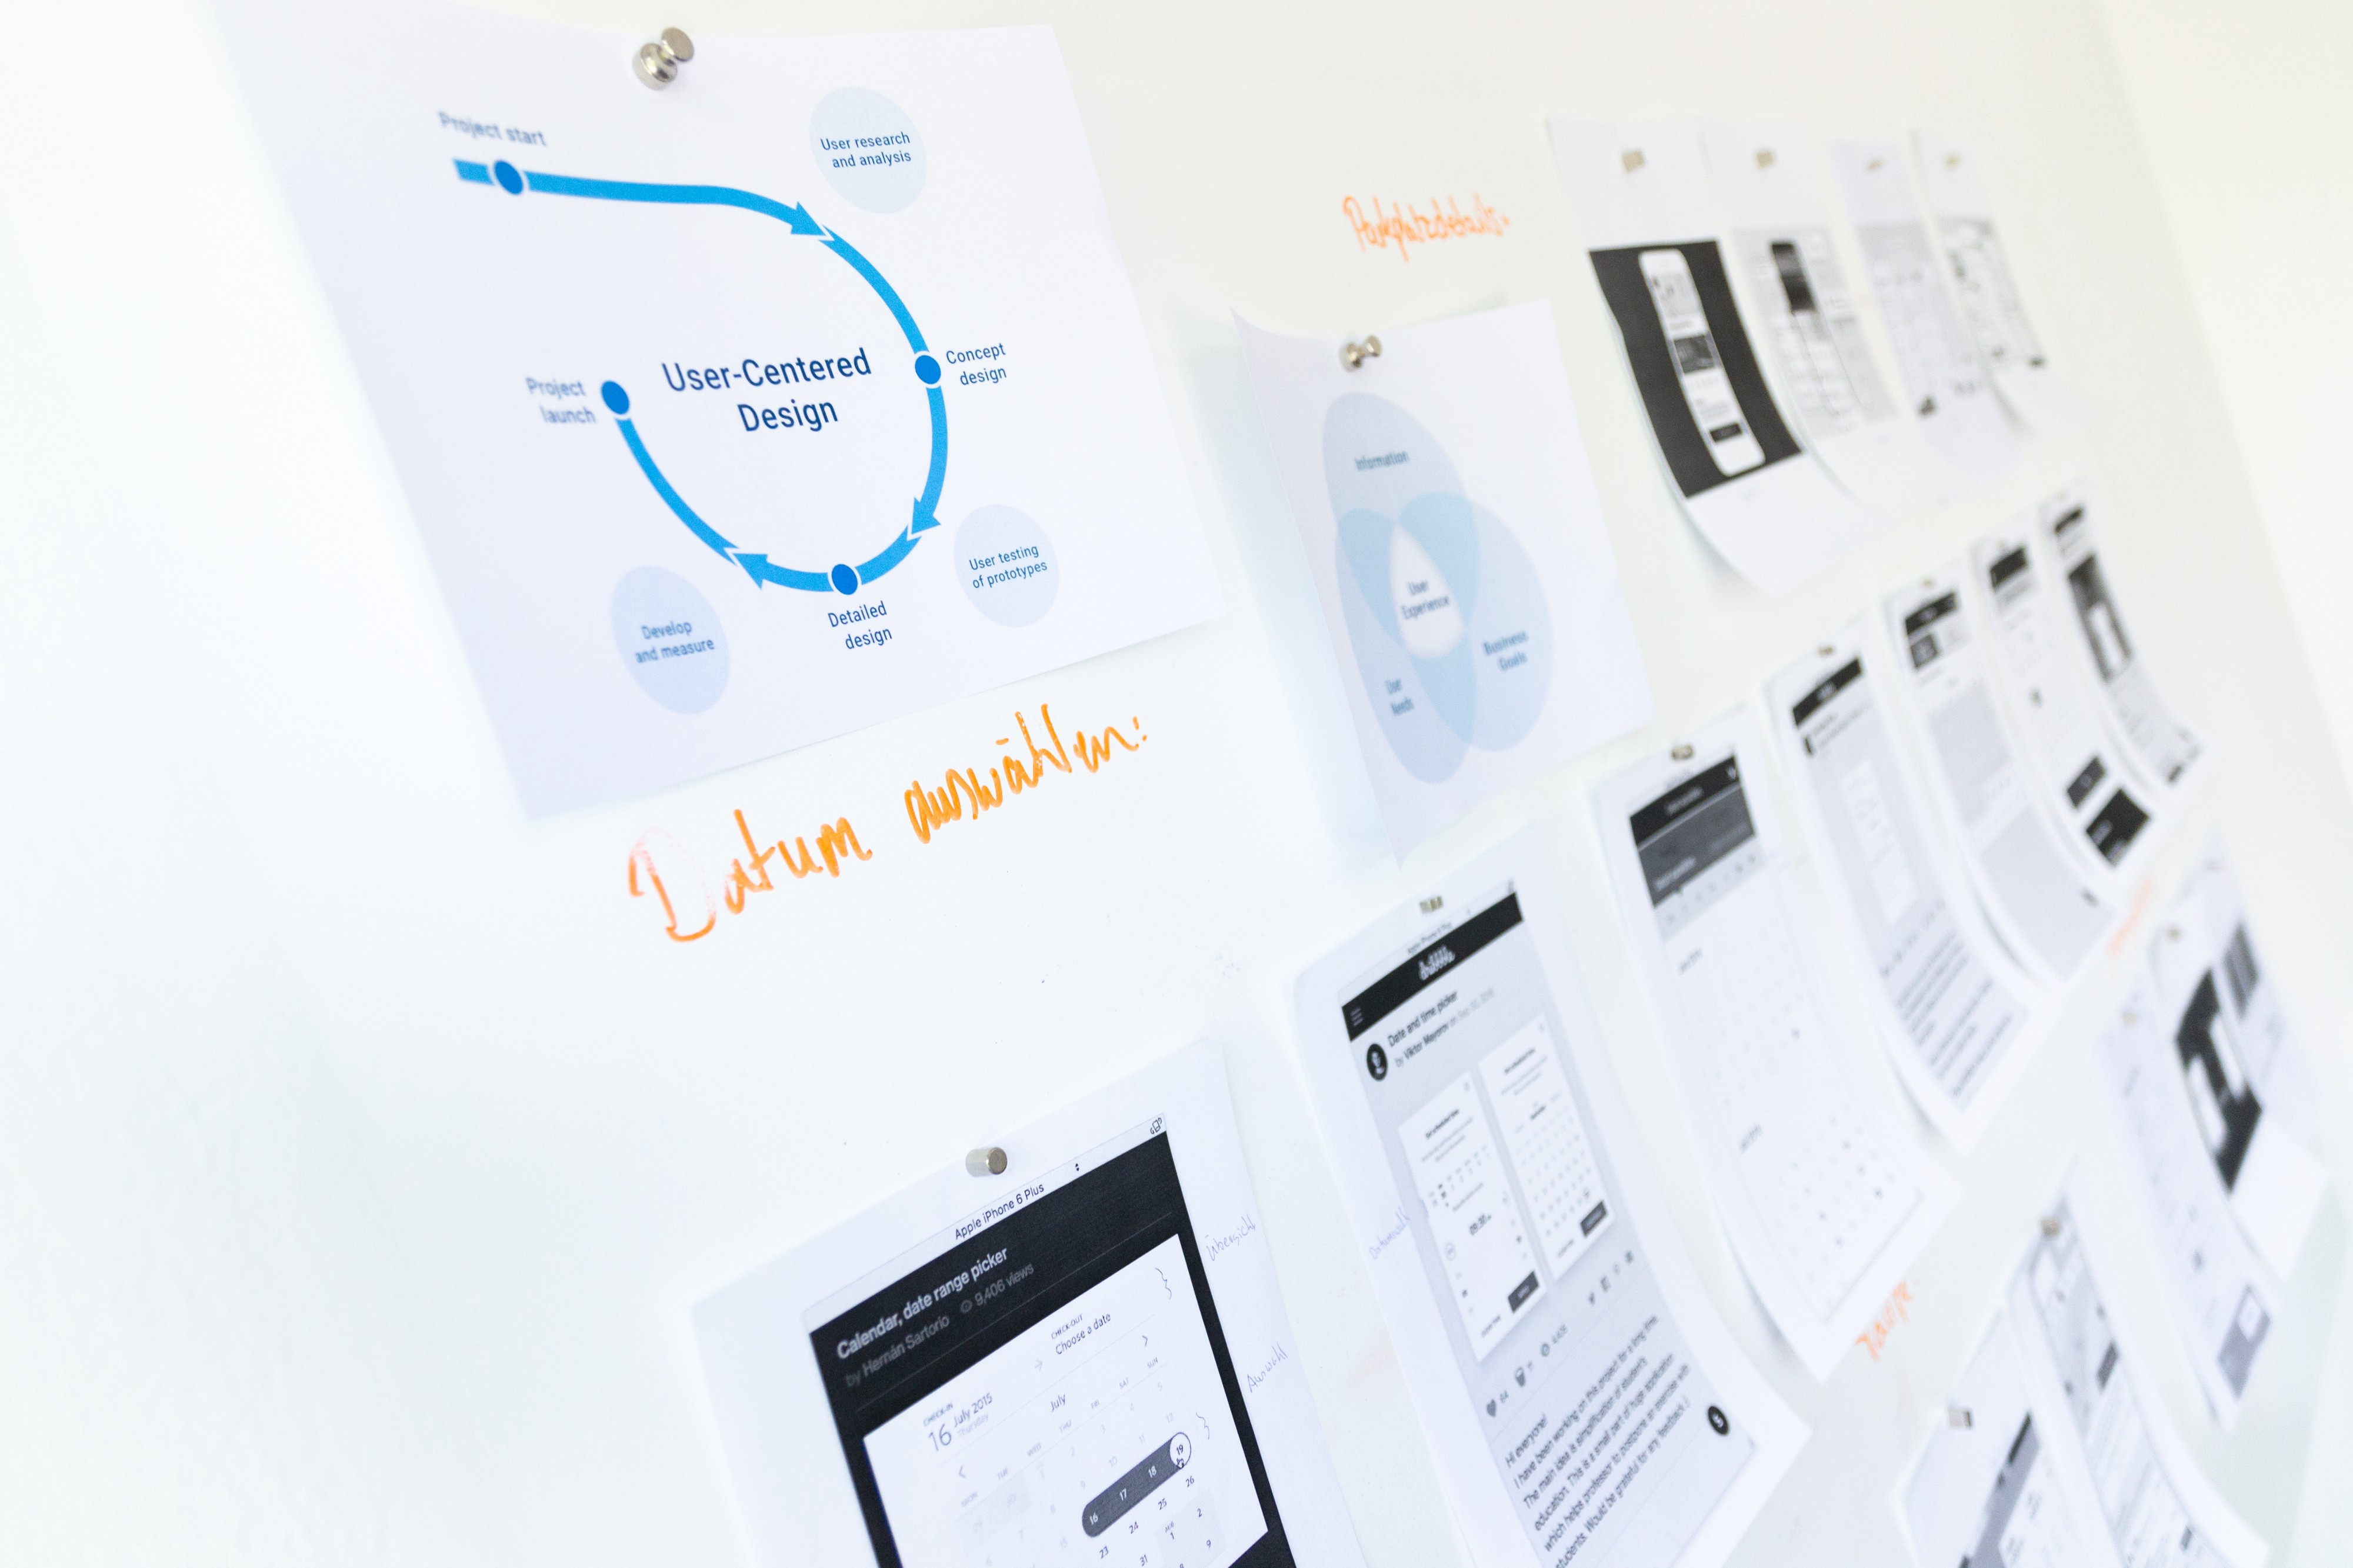 A whiteboard with some charts, infographics and cards with text.